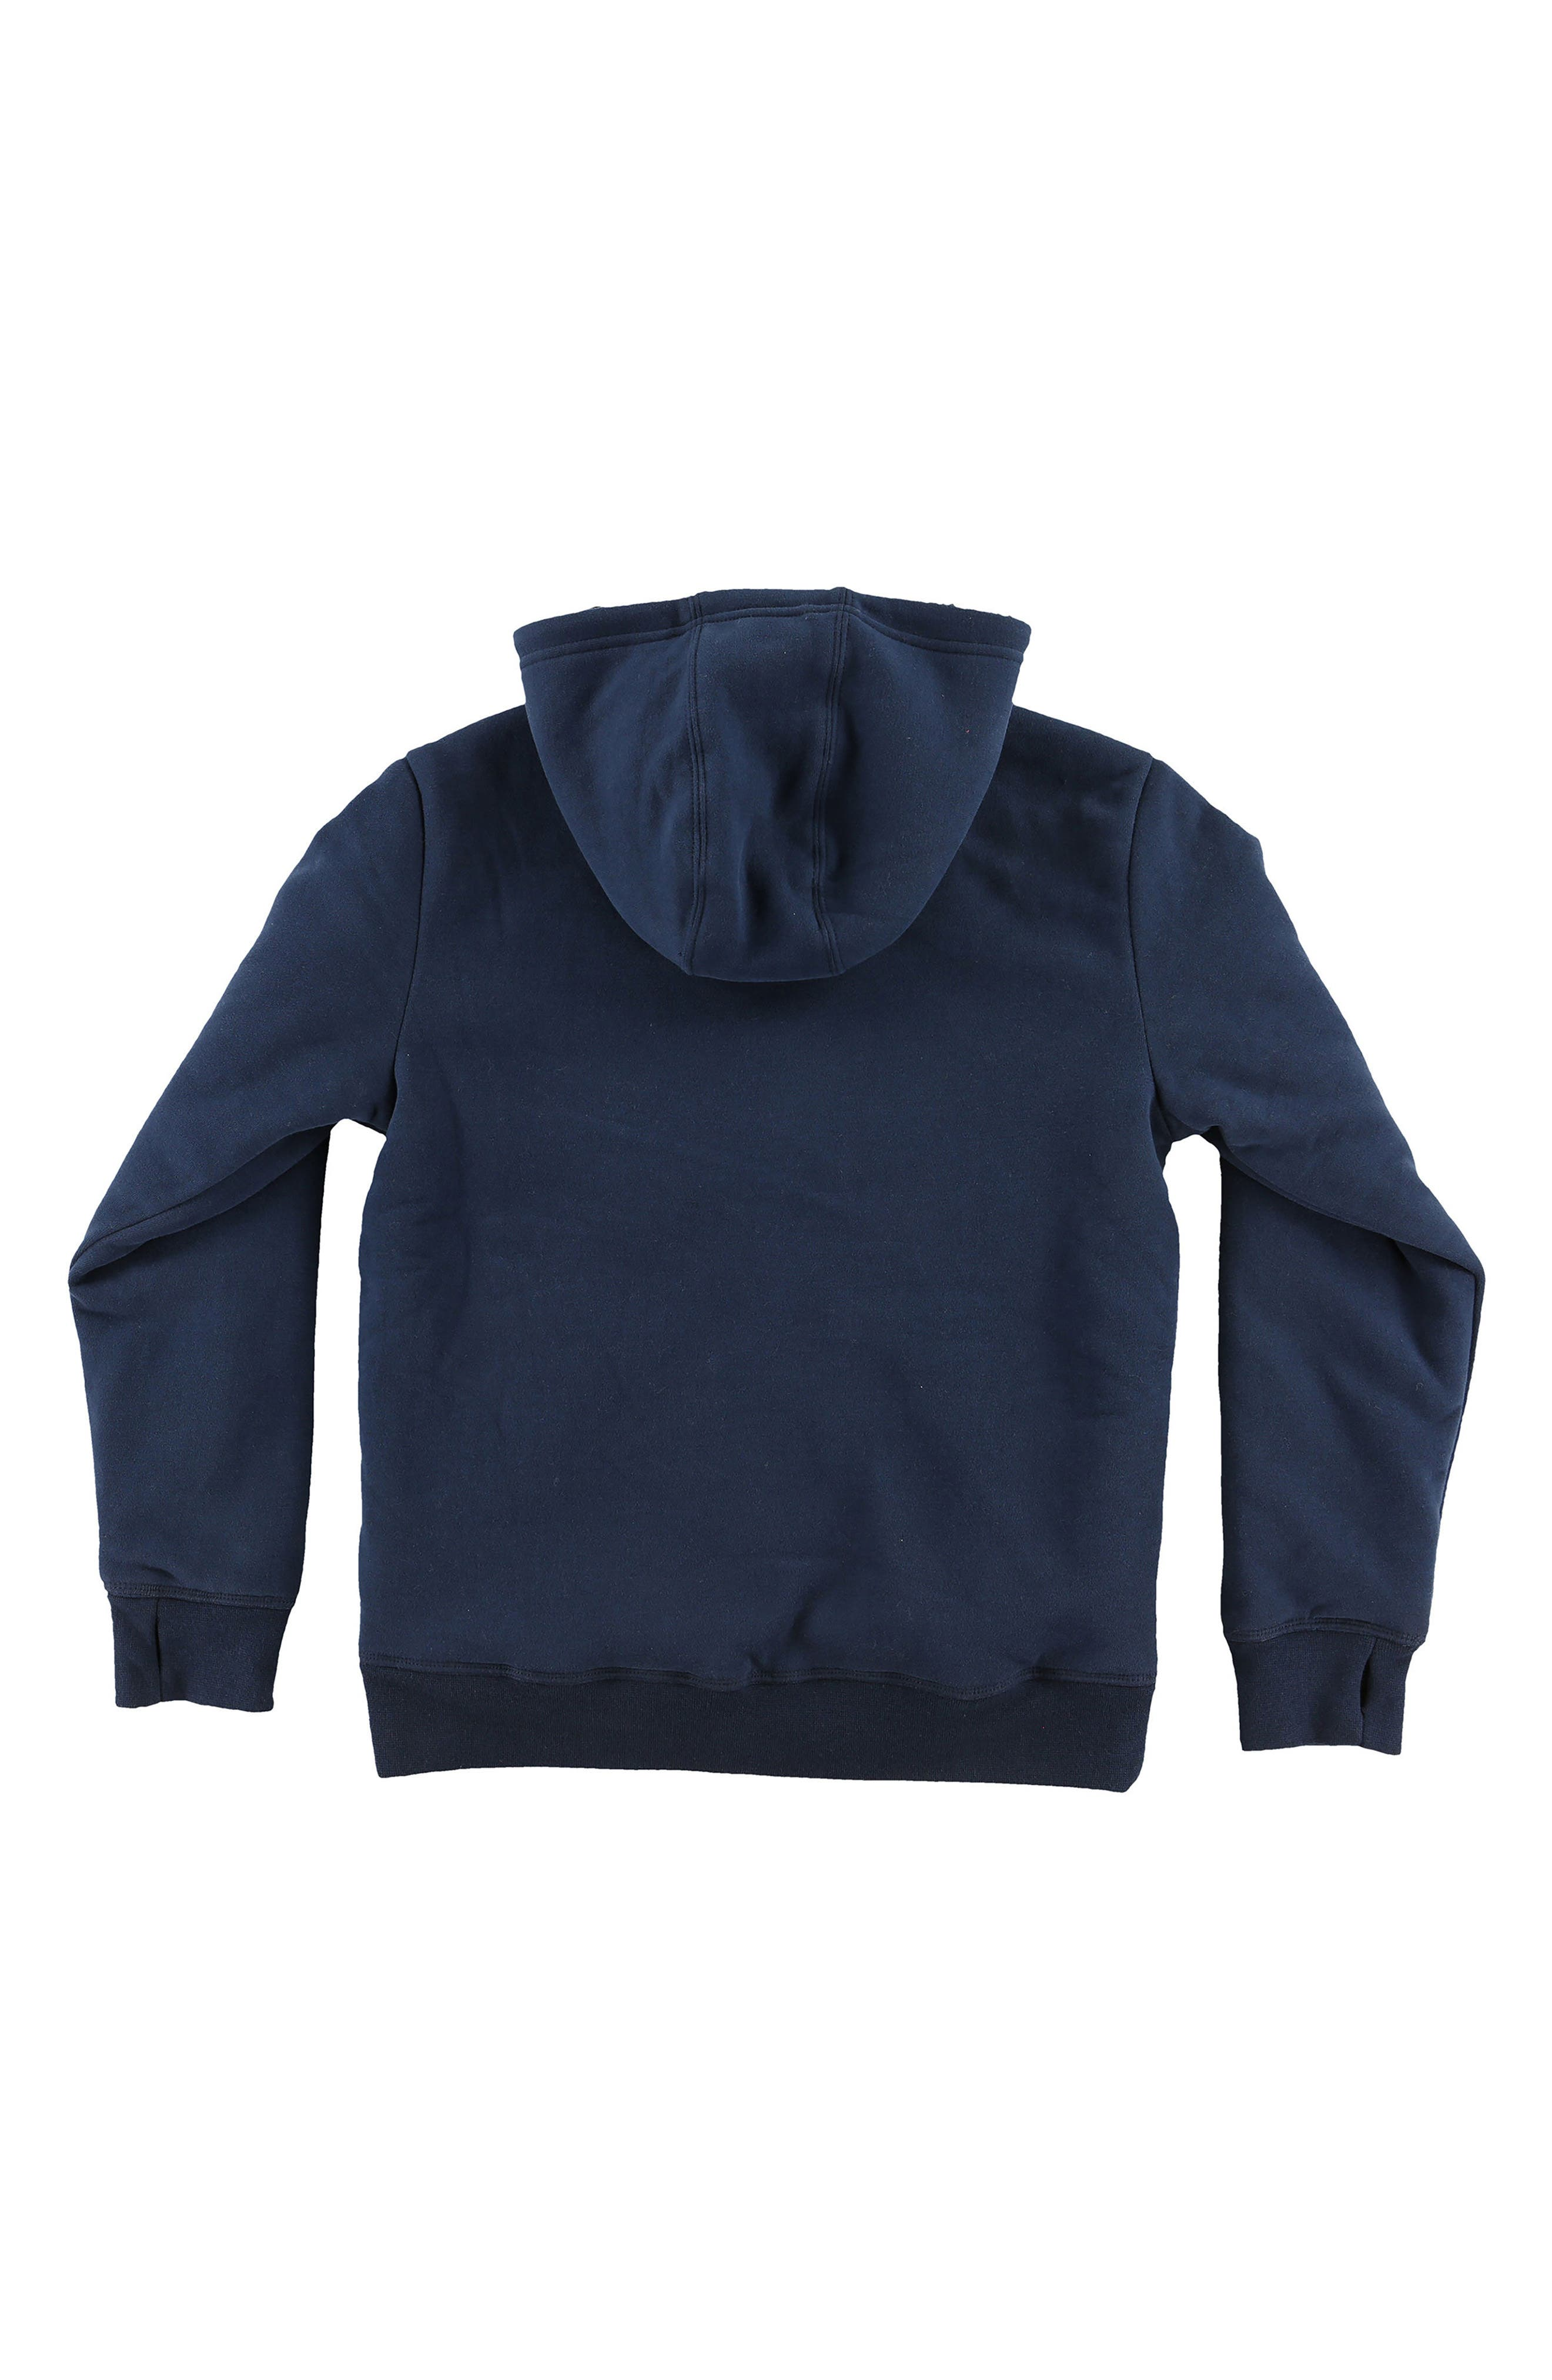 Staple Plush Lined Pullover Hoodie,                             Alternate thumbnail 2, color,                             Navy